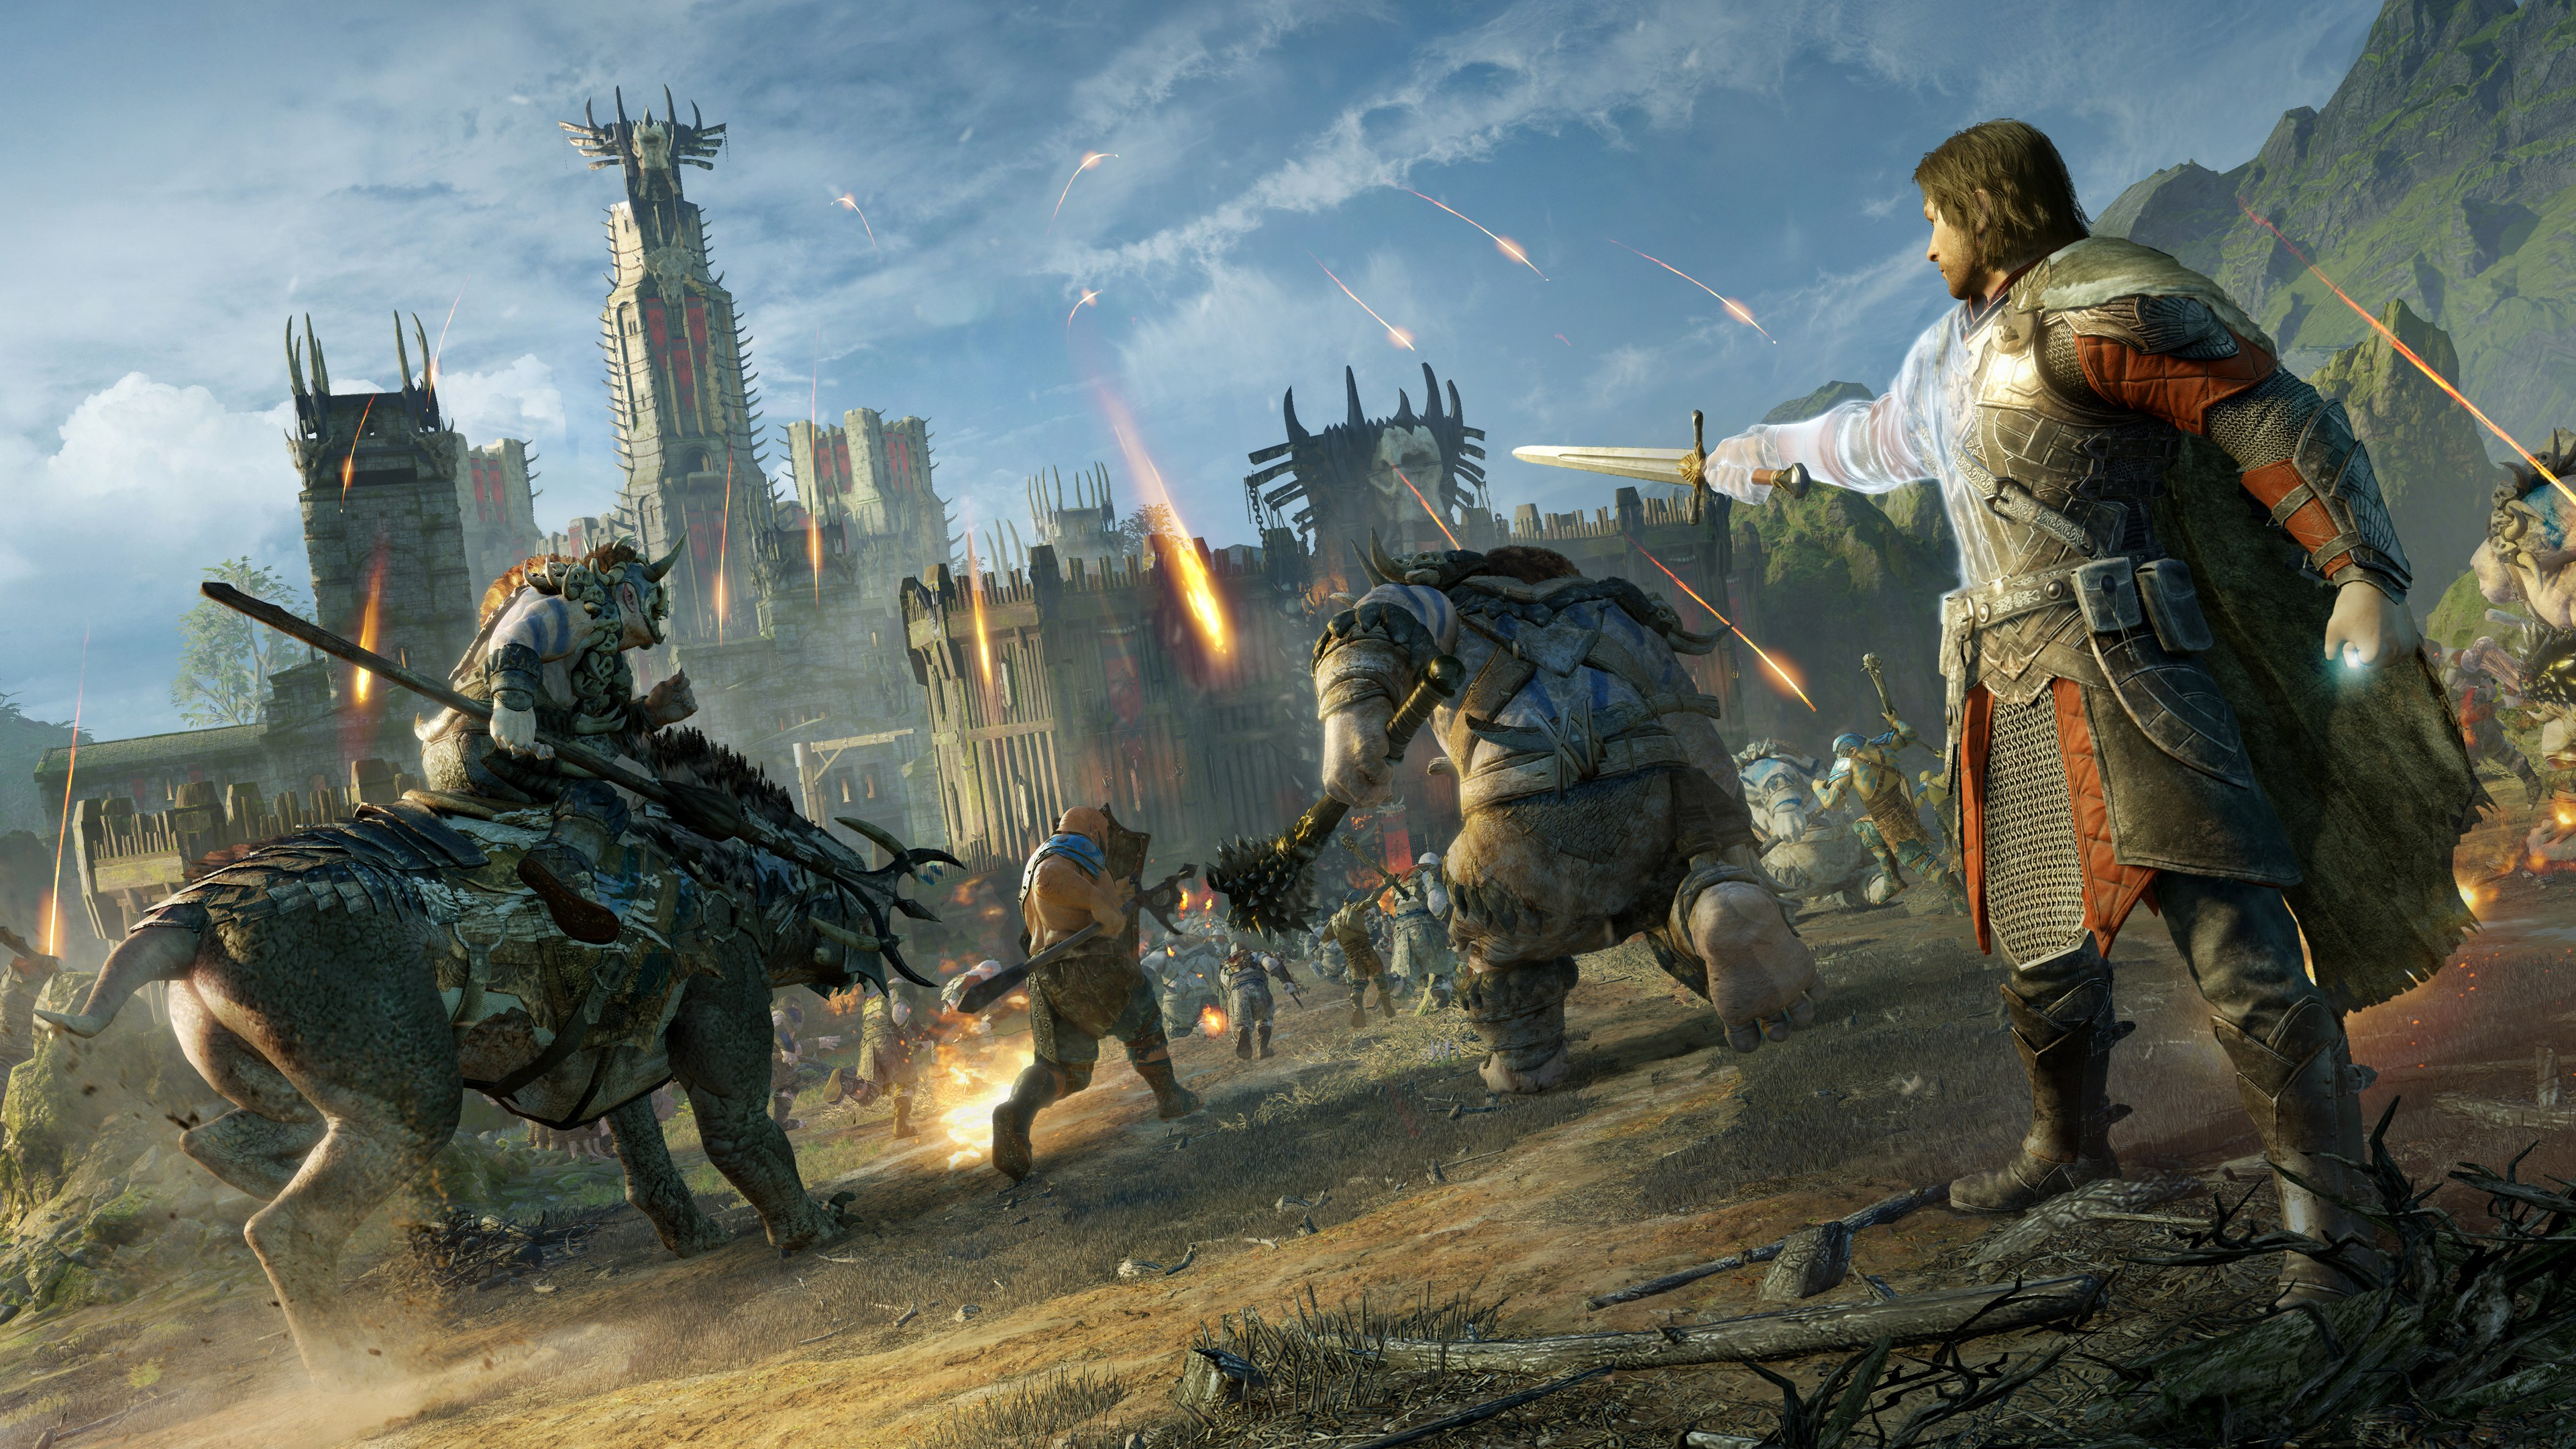 Middle,earth Shadow of War Xbox One X vs PS4 Pro Comparison